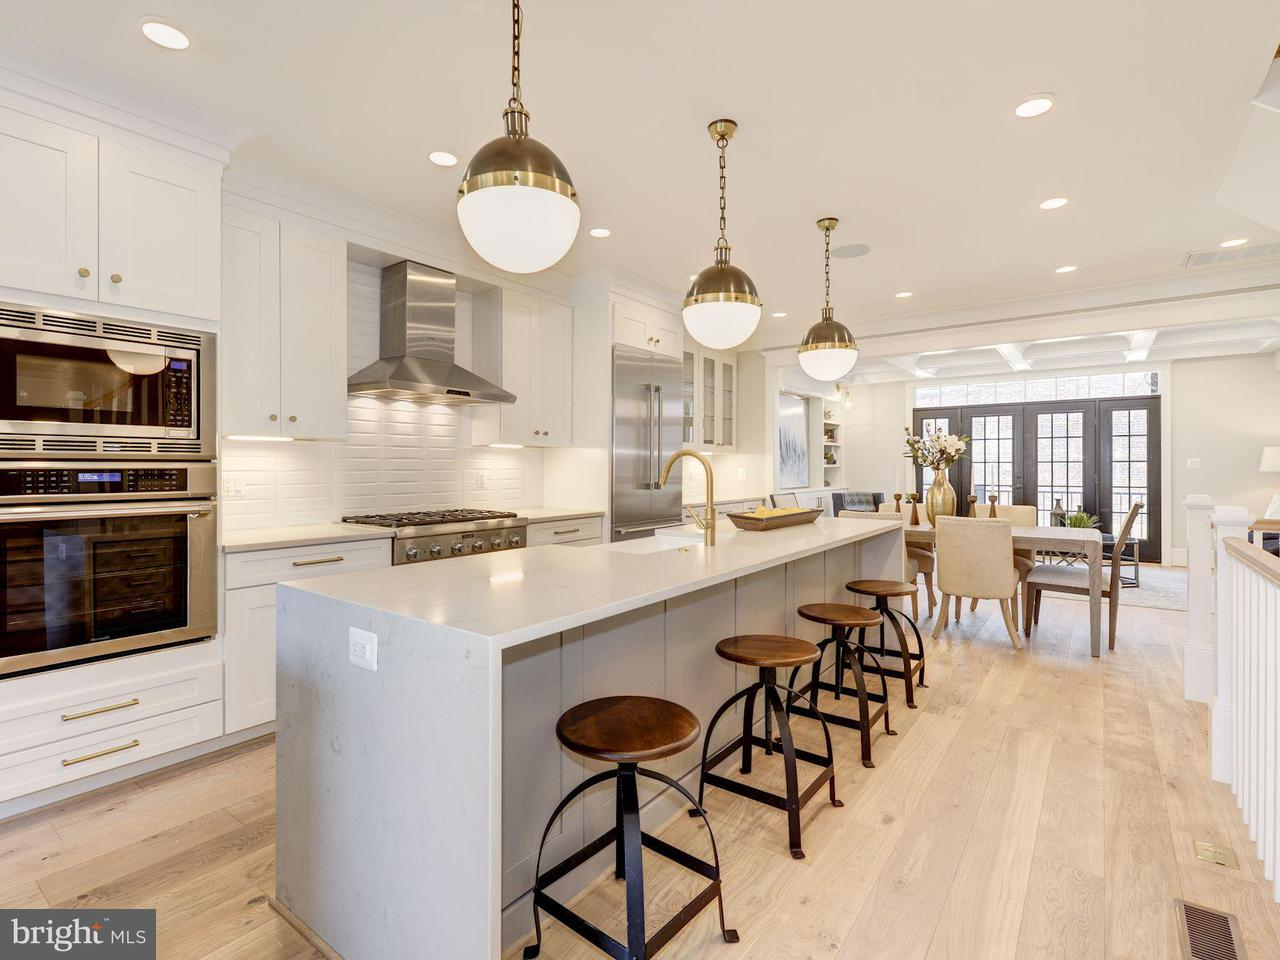 Townhouse for Sale at 1803 37th St Nw 1803 37th St Nw Washington, District Of Columbia 20007 United States